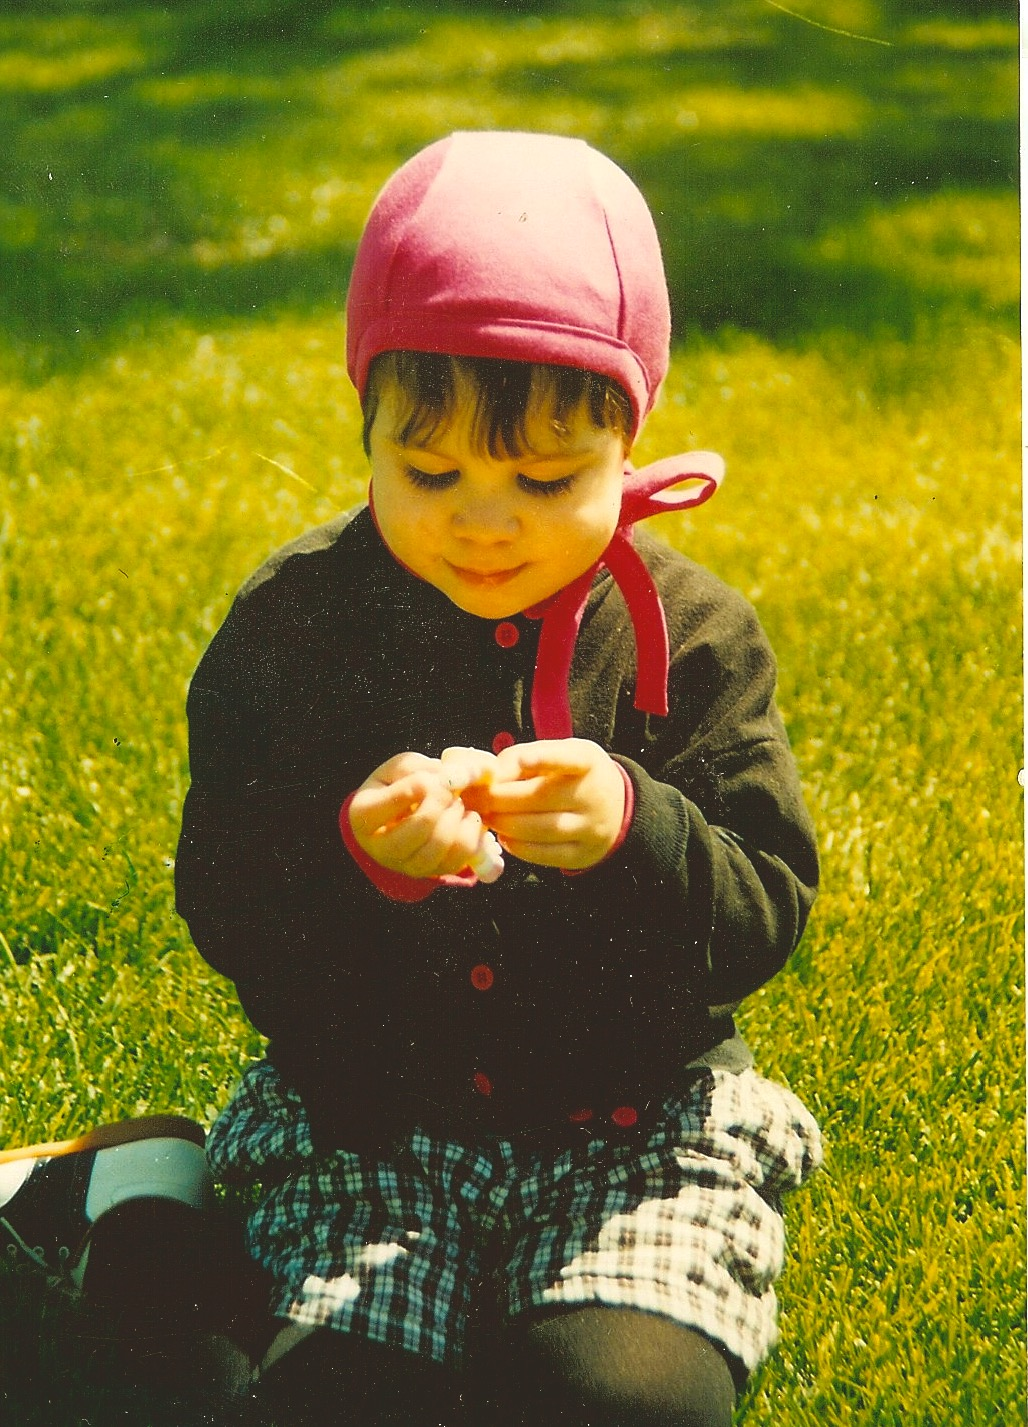 1990 - JoJo . age 2 playing with a walnut, wearing an Earhart Pilot in Size Large - fuscia organic cotton from Spiritex Mills, Asheville, NC. a great US manufacturer of organics. We support!!  Most Age 2 children wear XL, or XXL with revised sizing. Also revised: our ties are thin.